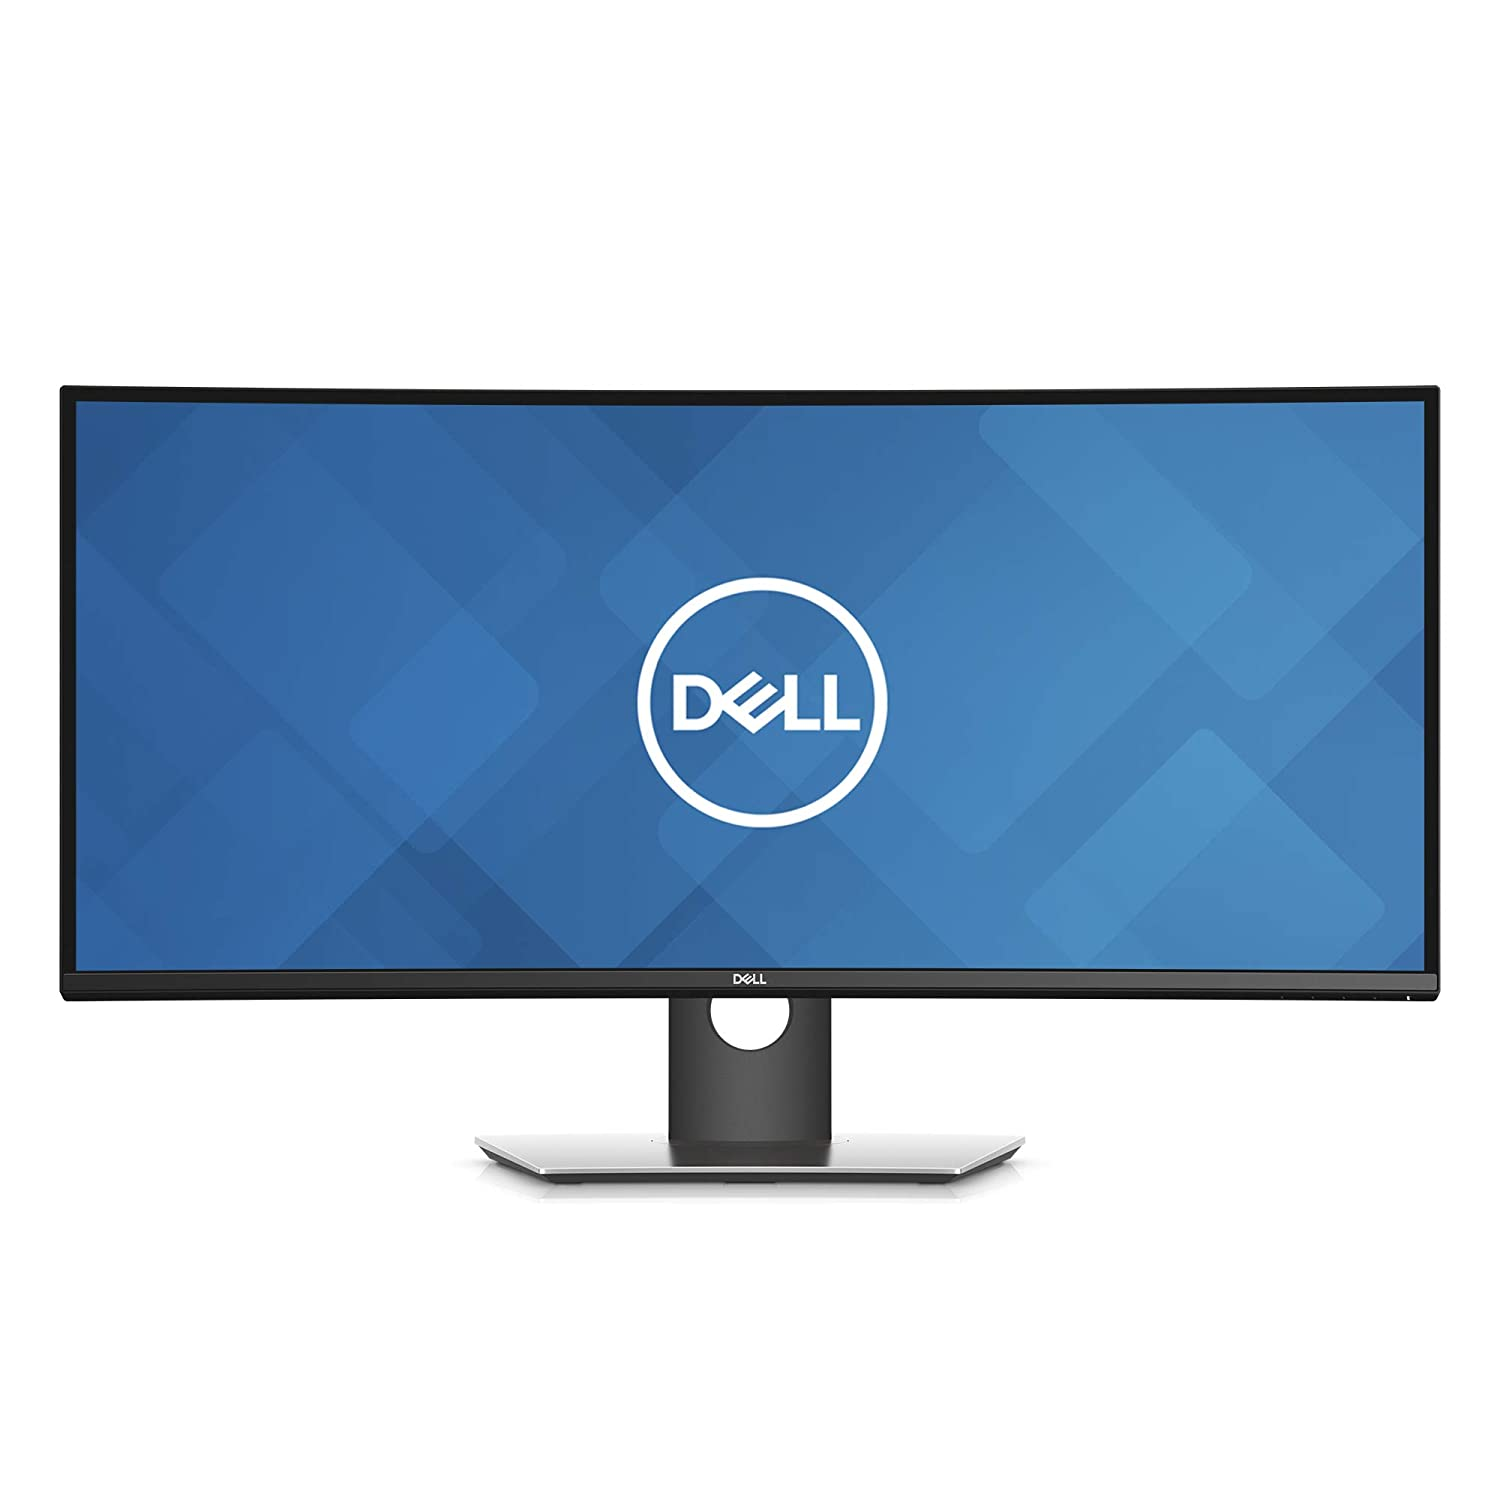 Dell U3419w Ultrasharp 34-Inch WQHD (3440x1440) Curved IPS USB-C Monitor, Black